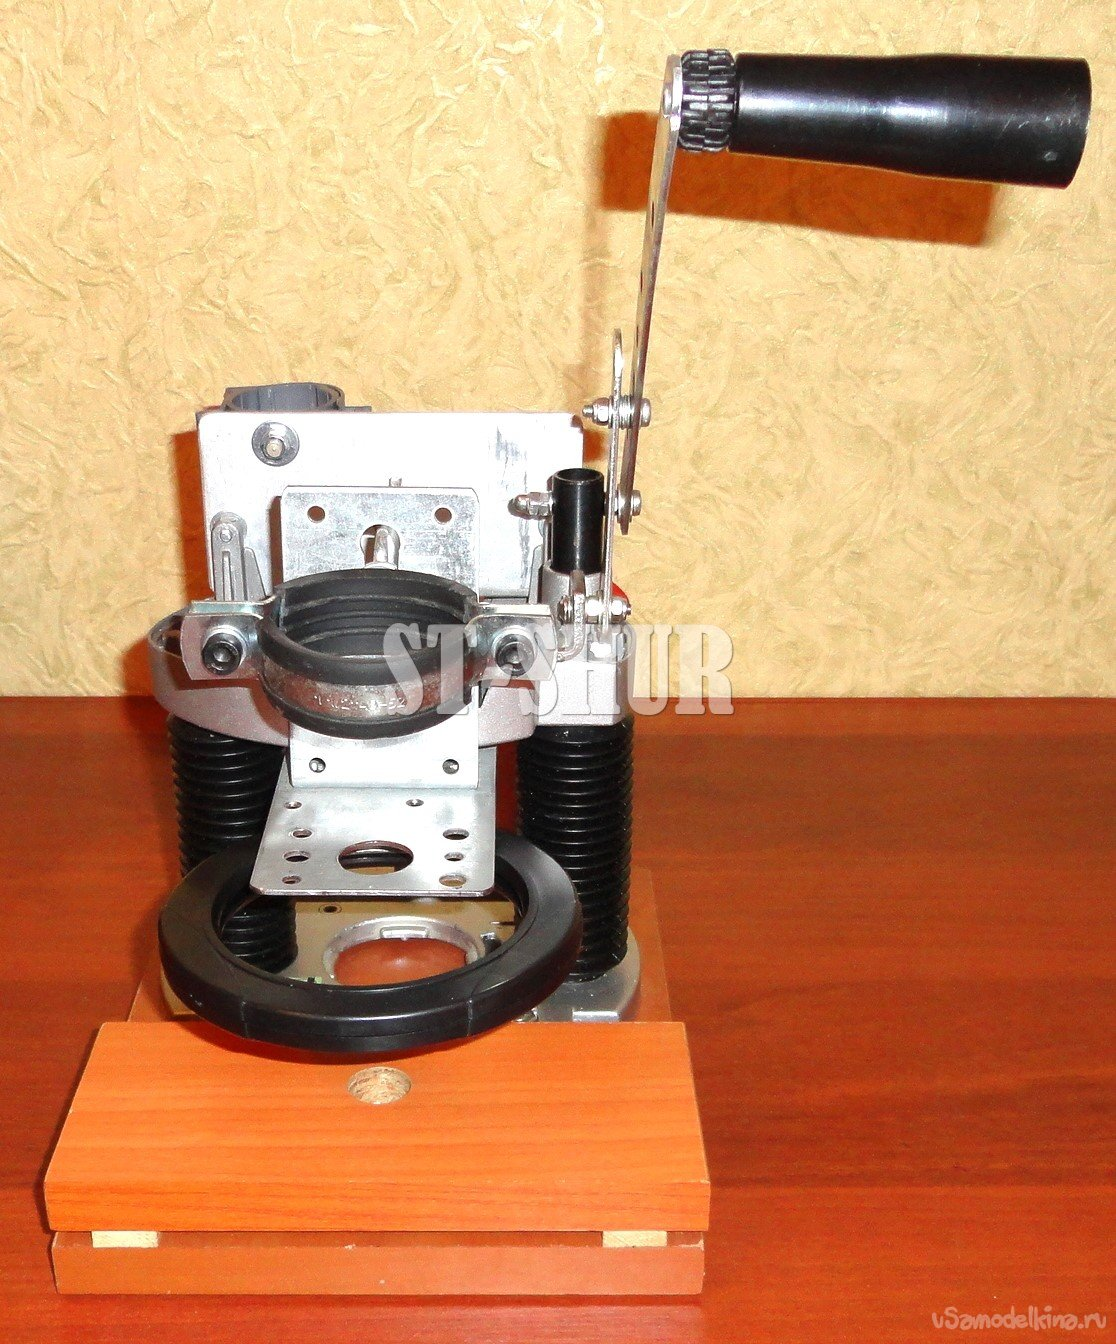 Further modernization of the drill stand (continuation of the topic)